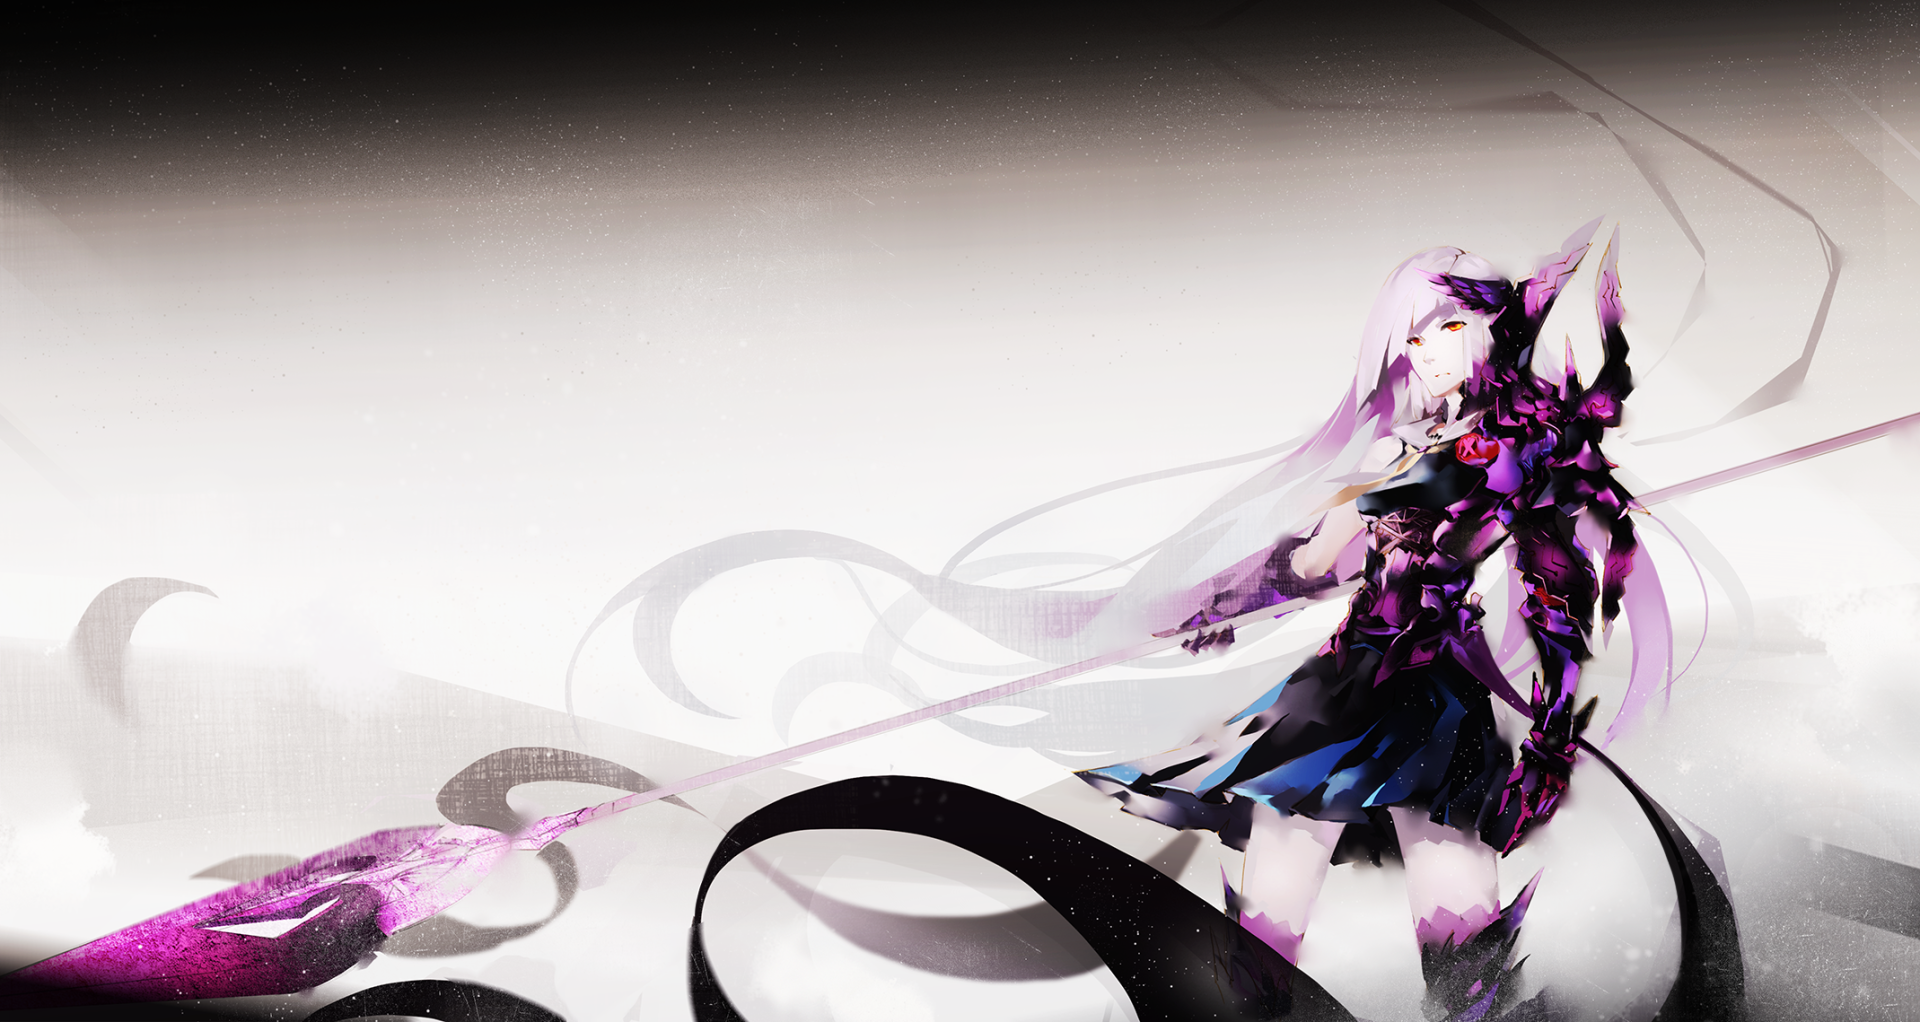 Fate grand order hd wallpaper background image 2139x1139 id 803912 wallpaper abyss - Fate grand order lancer wallpaper ...